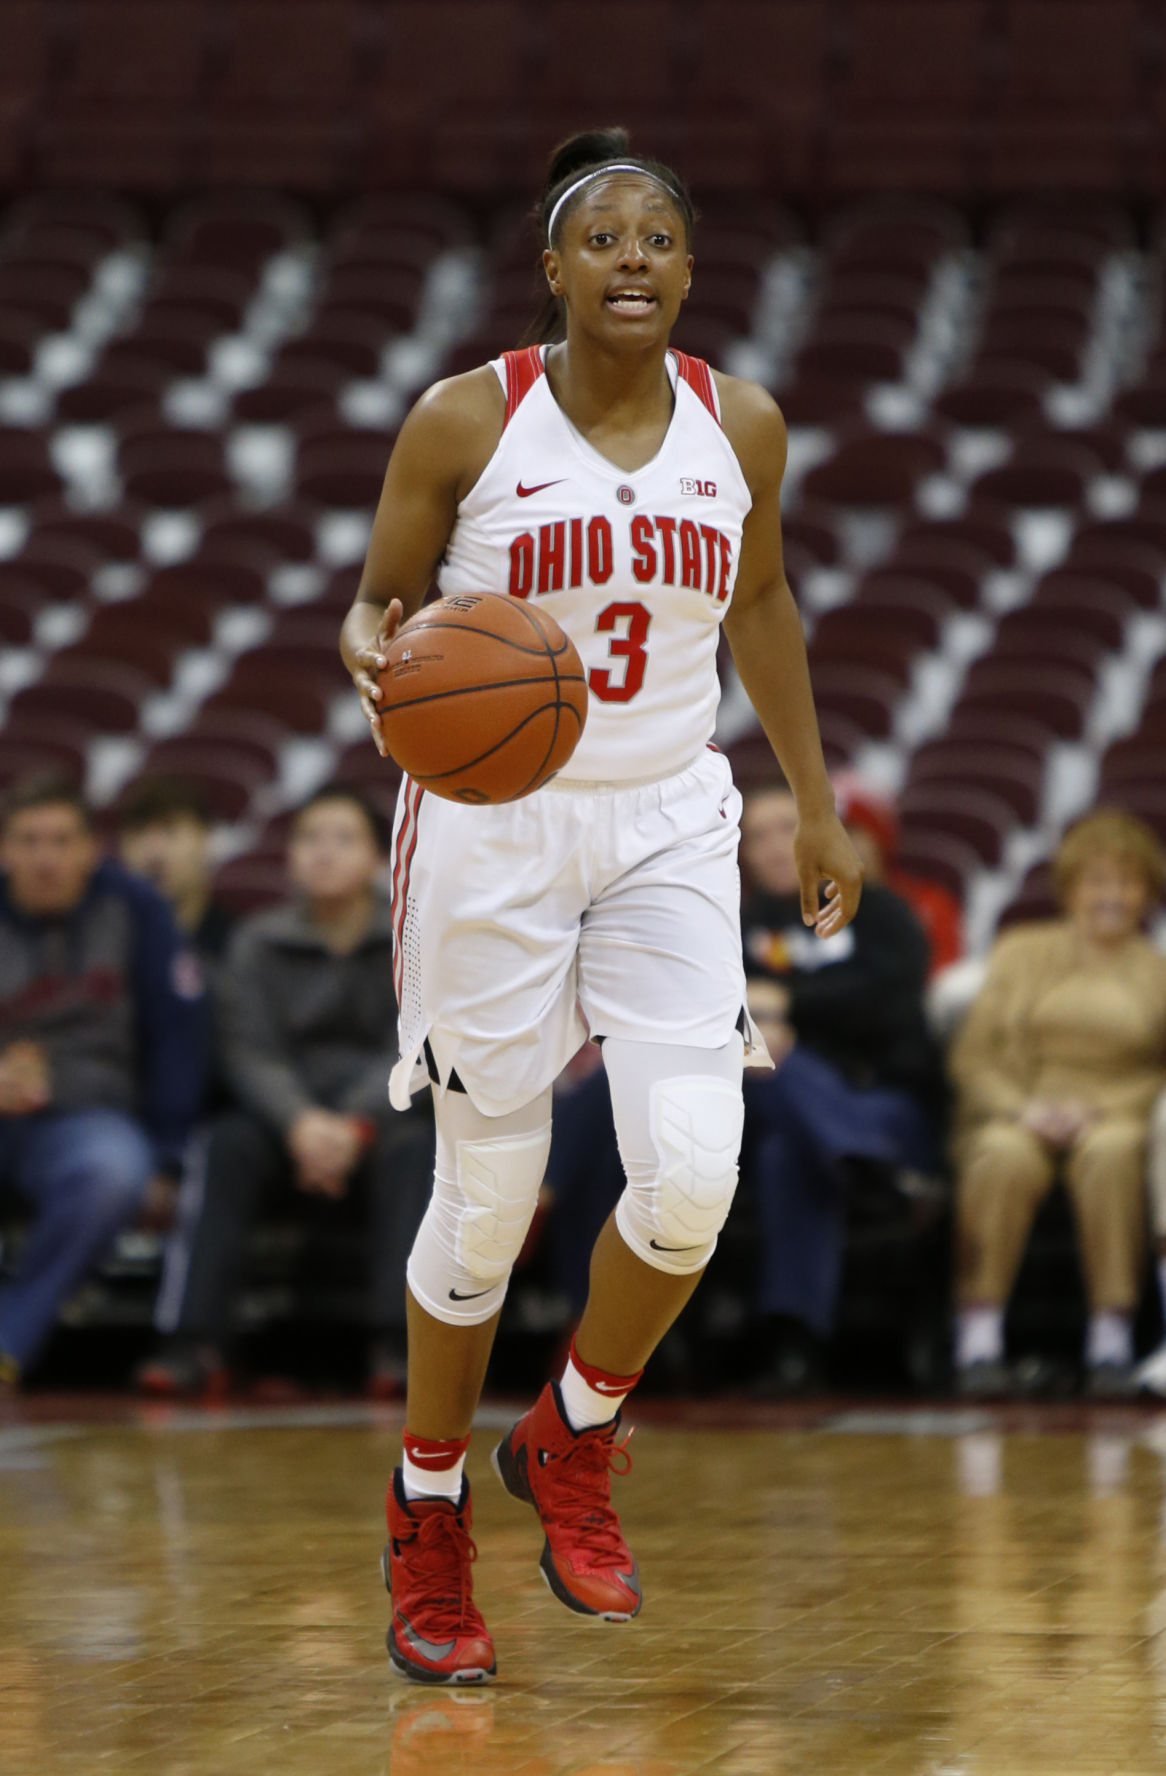 Badgers women's basketball: Kelsey Mitchell leads No. 14 ...